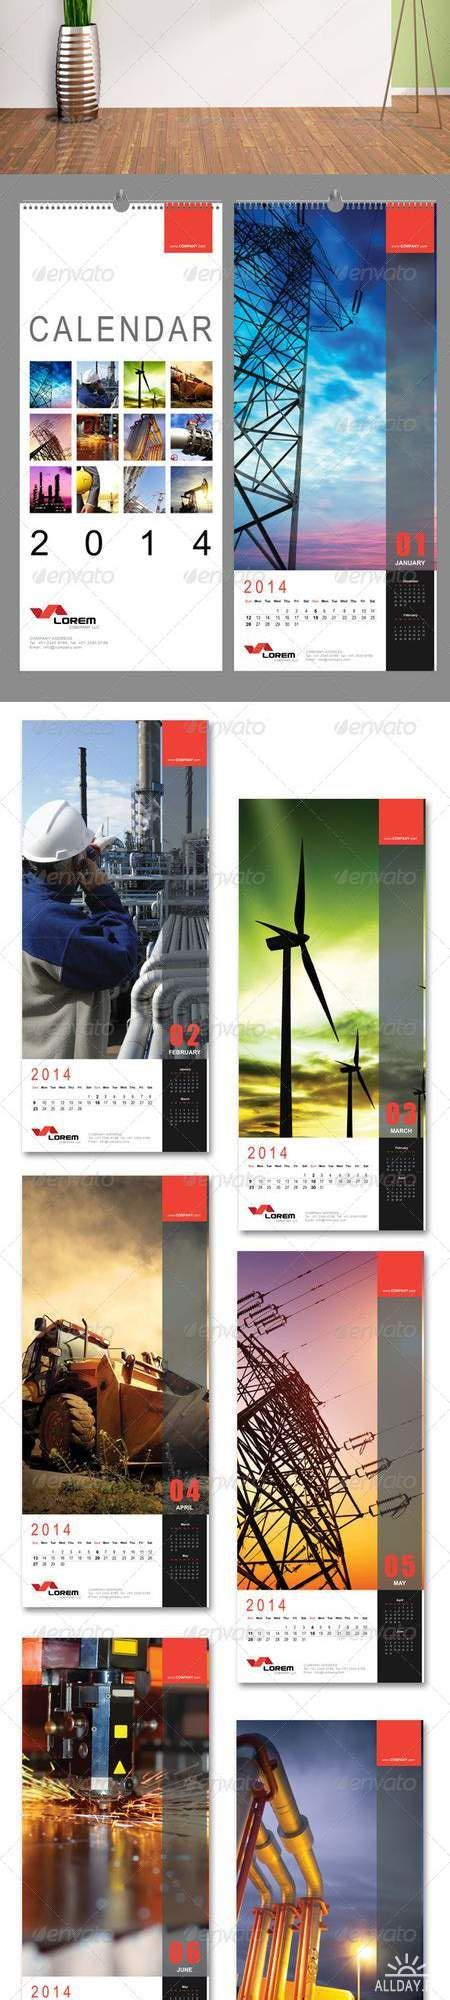 calendar design corporate 17 best images about corporate calendar design on